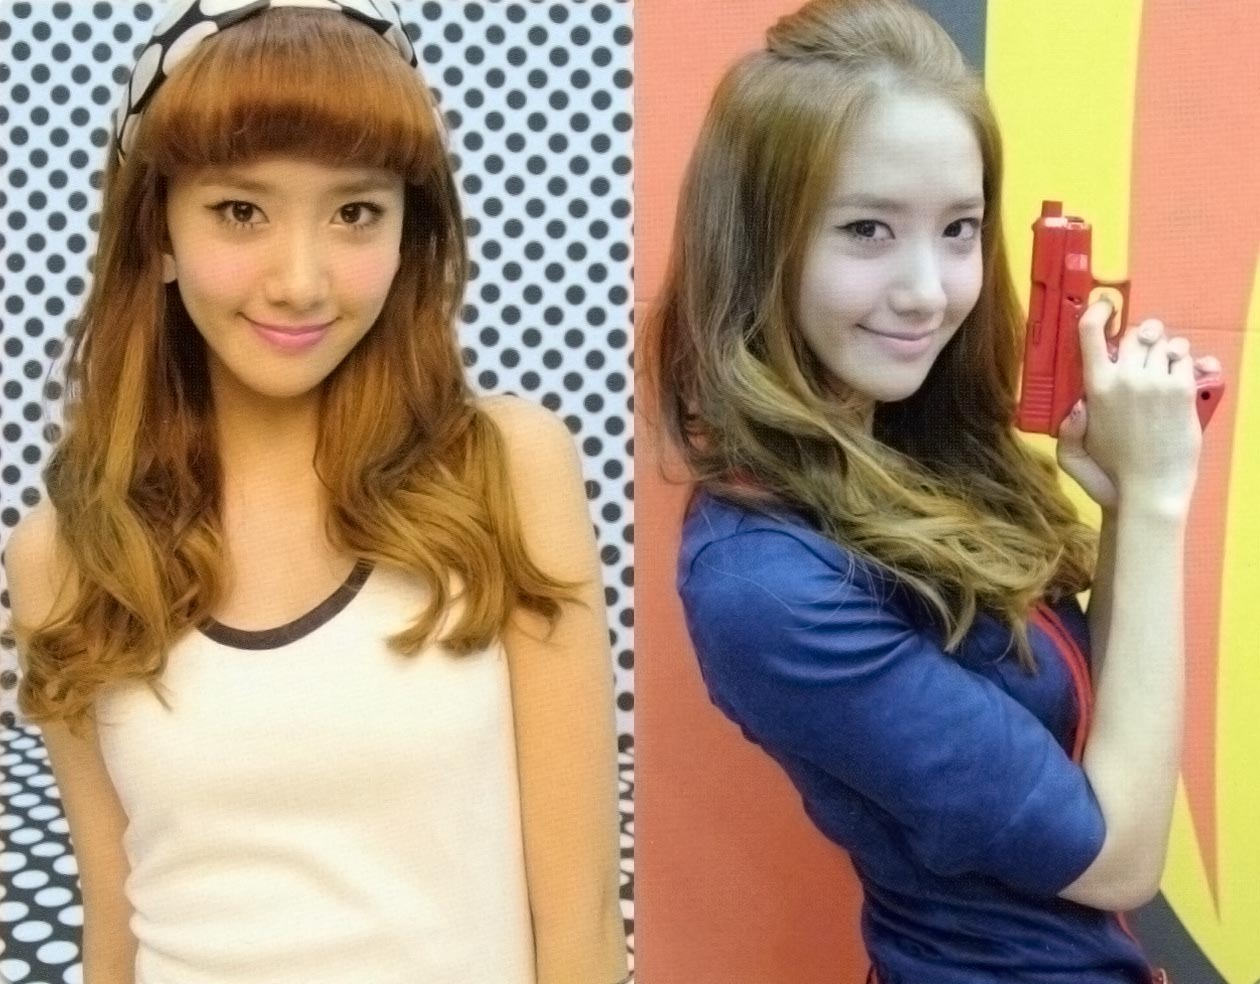 http://images4.fanpop.com/image/photos/17100000/yoona-Hoot-girls-generation-snsd-17165681-1260-984.jpg